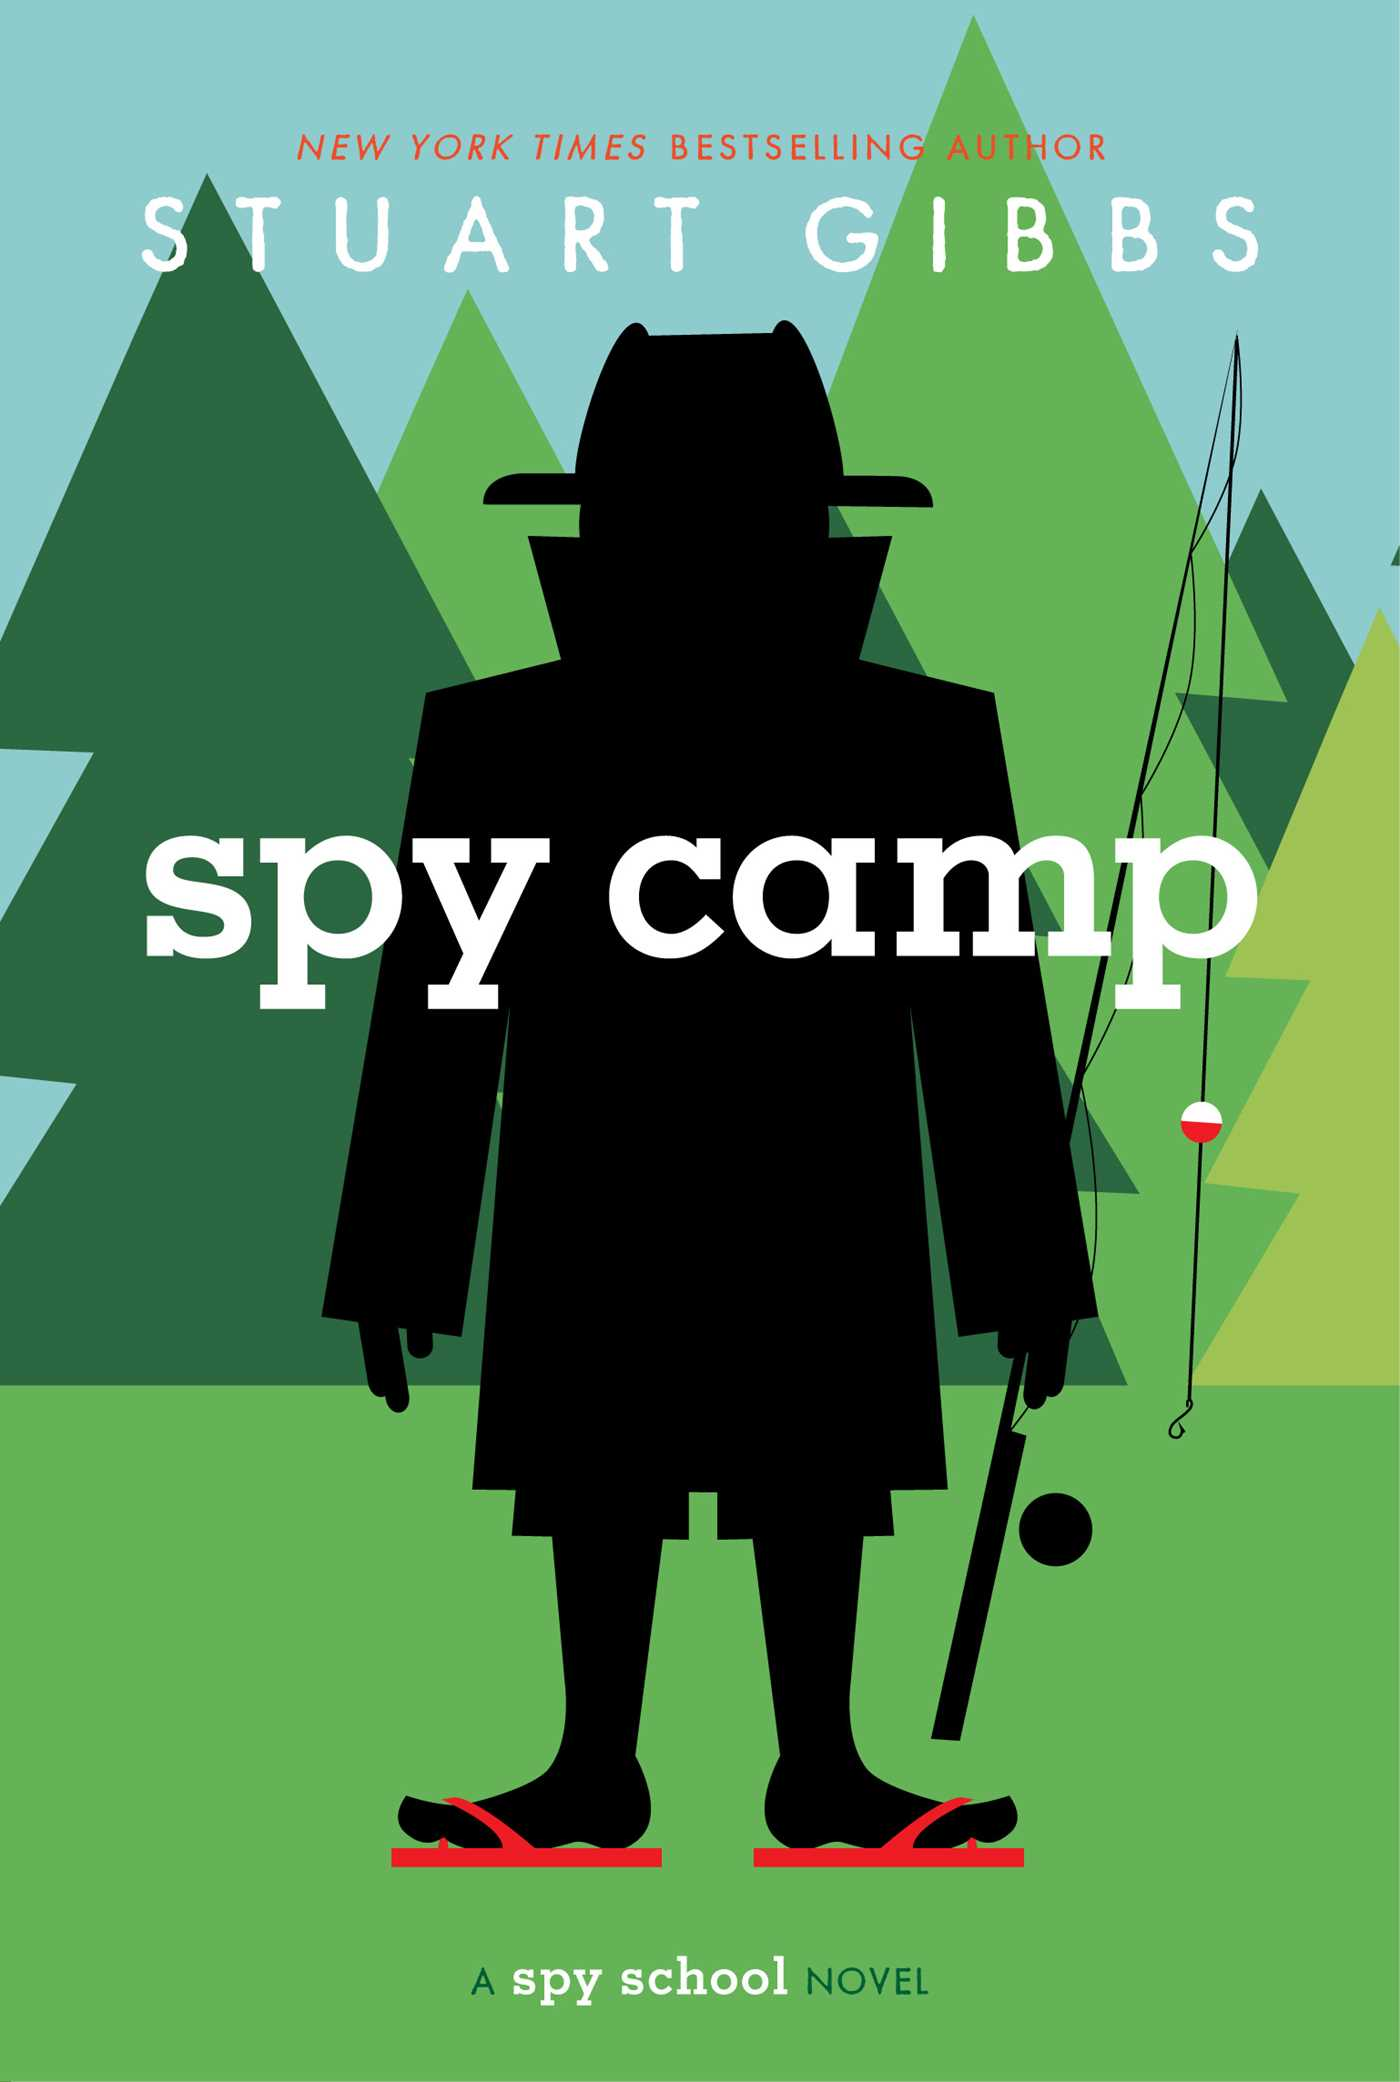 Spy-camp-9781442457546_hr